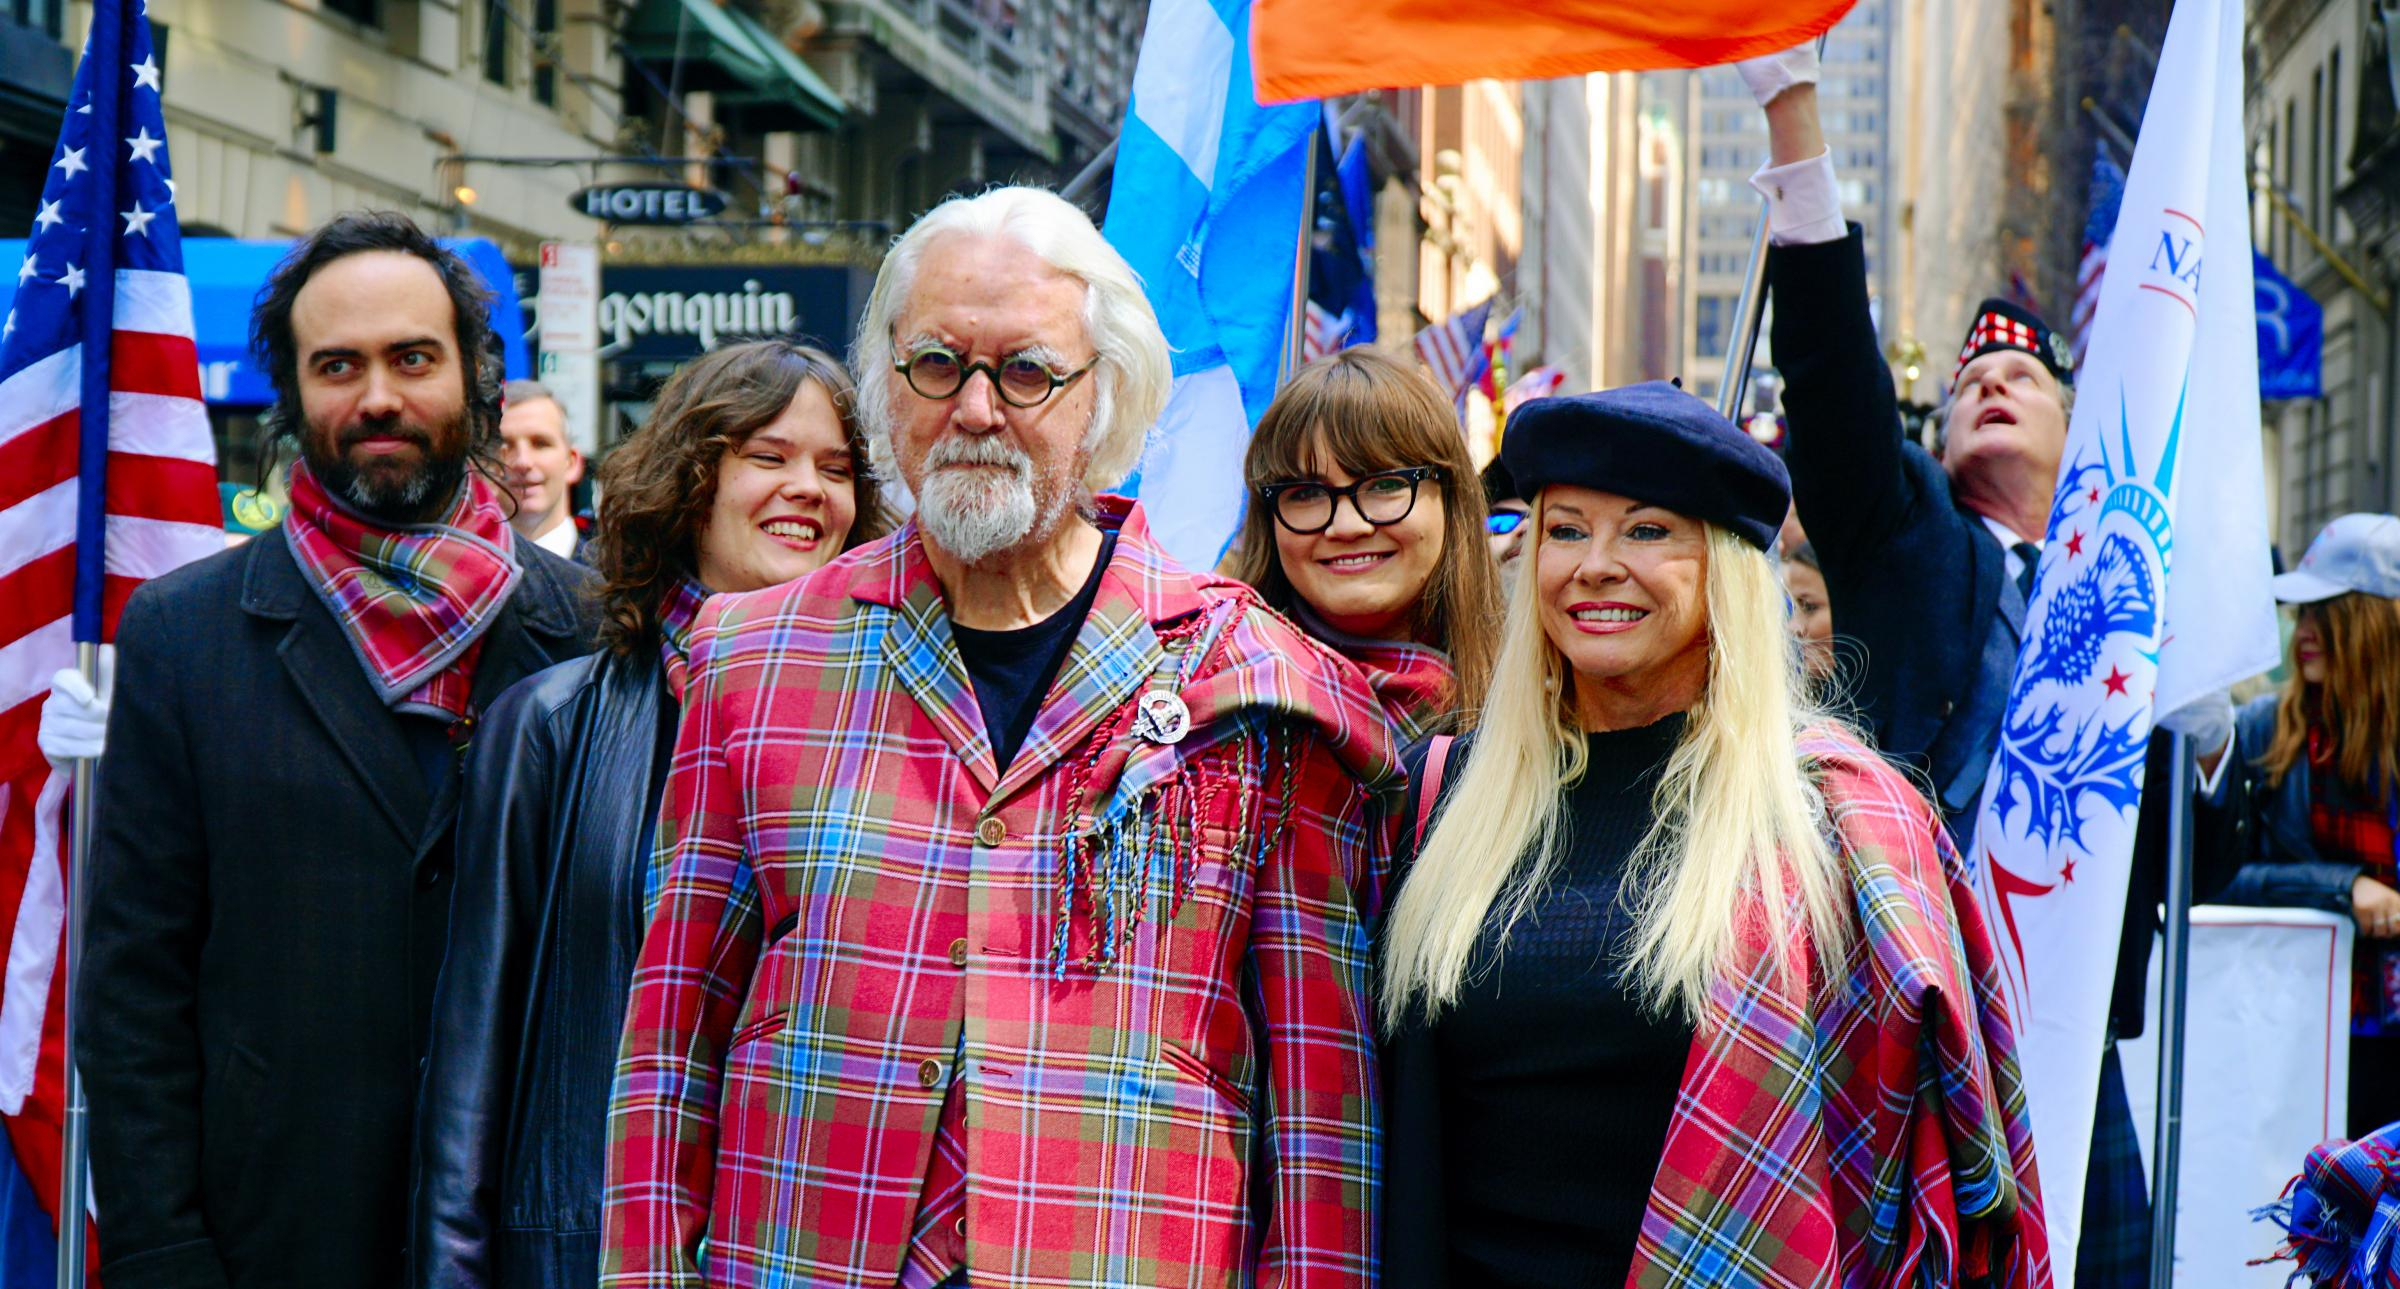 Sir Billy Connolly and his wife Pamela Stephenson led the annual march